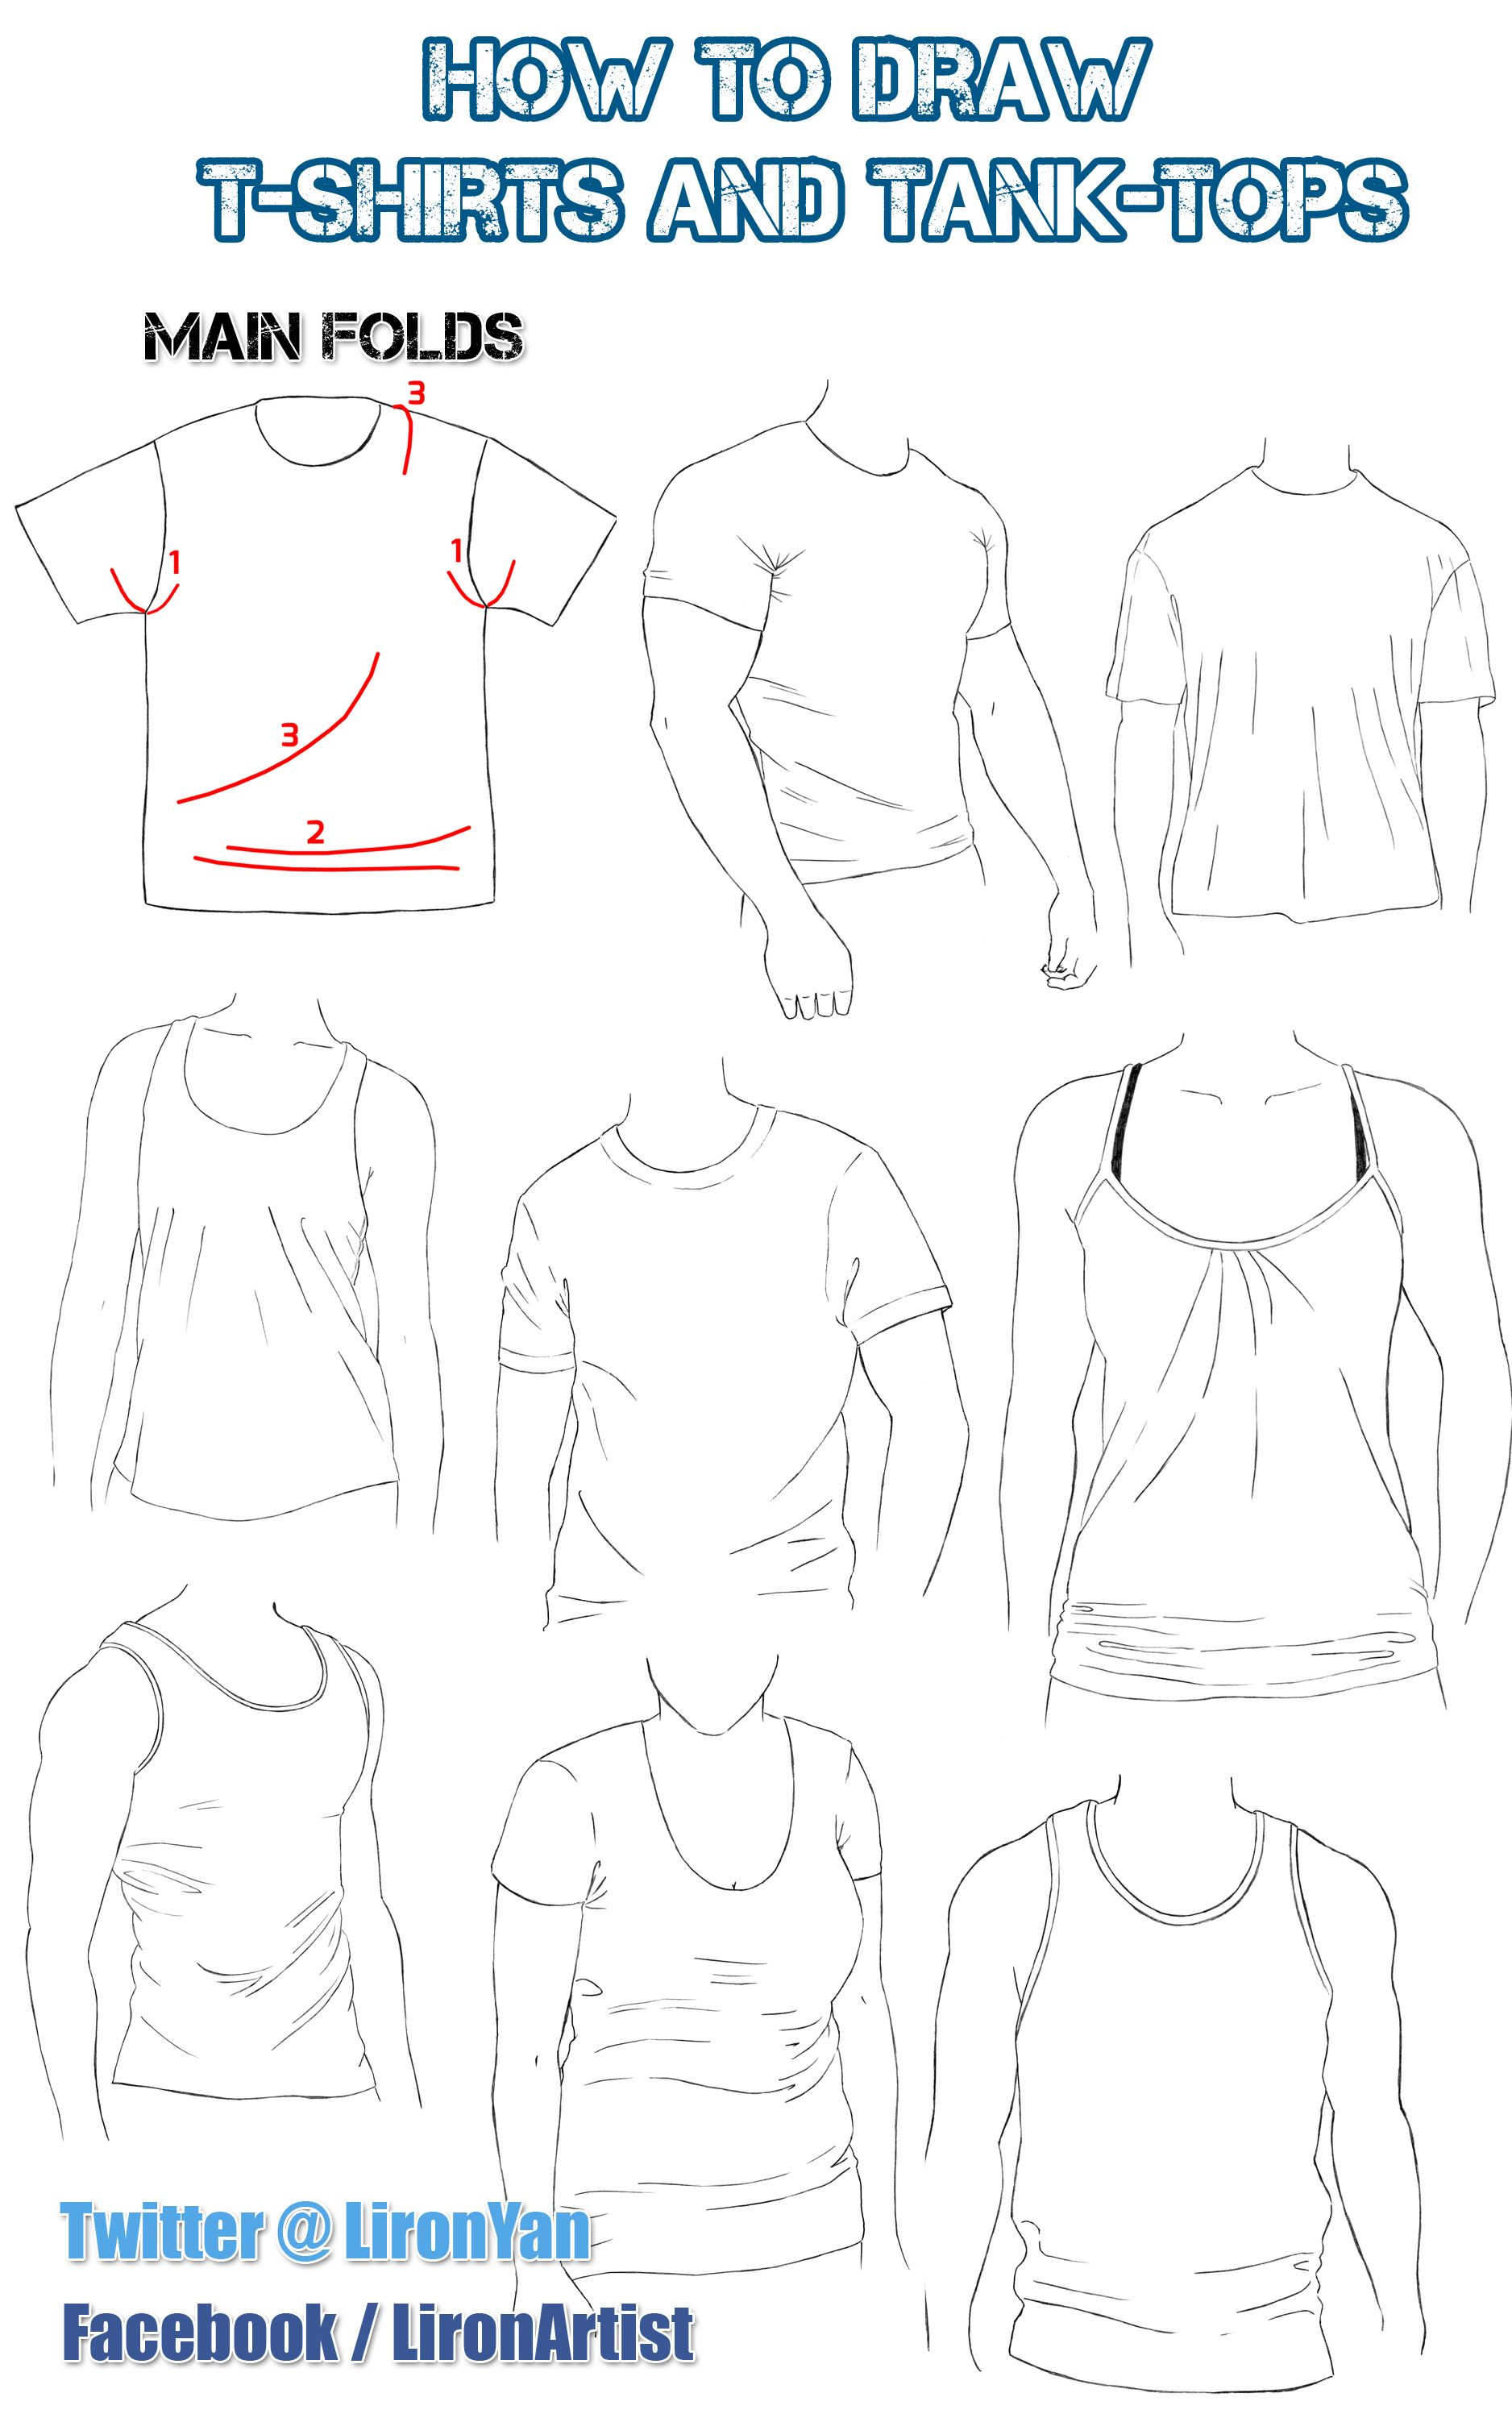 Pin By Liron Yanconsky On How To Draw Folds And Clothes Drawings